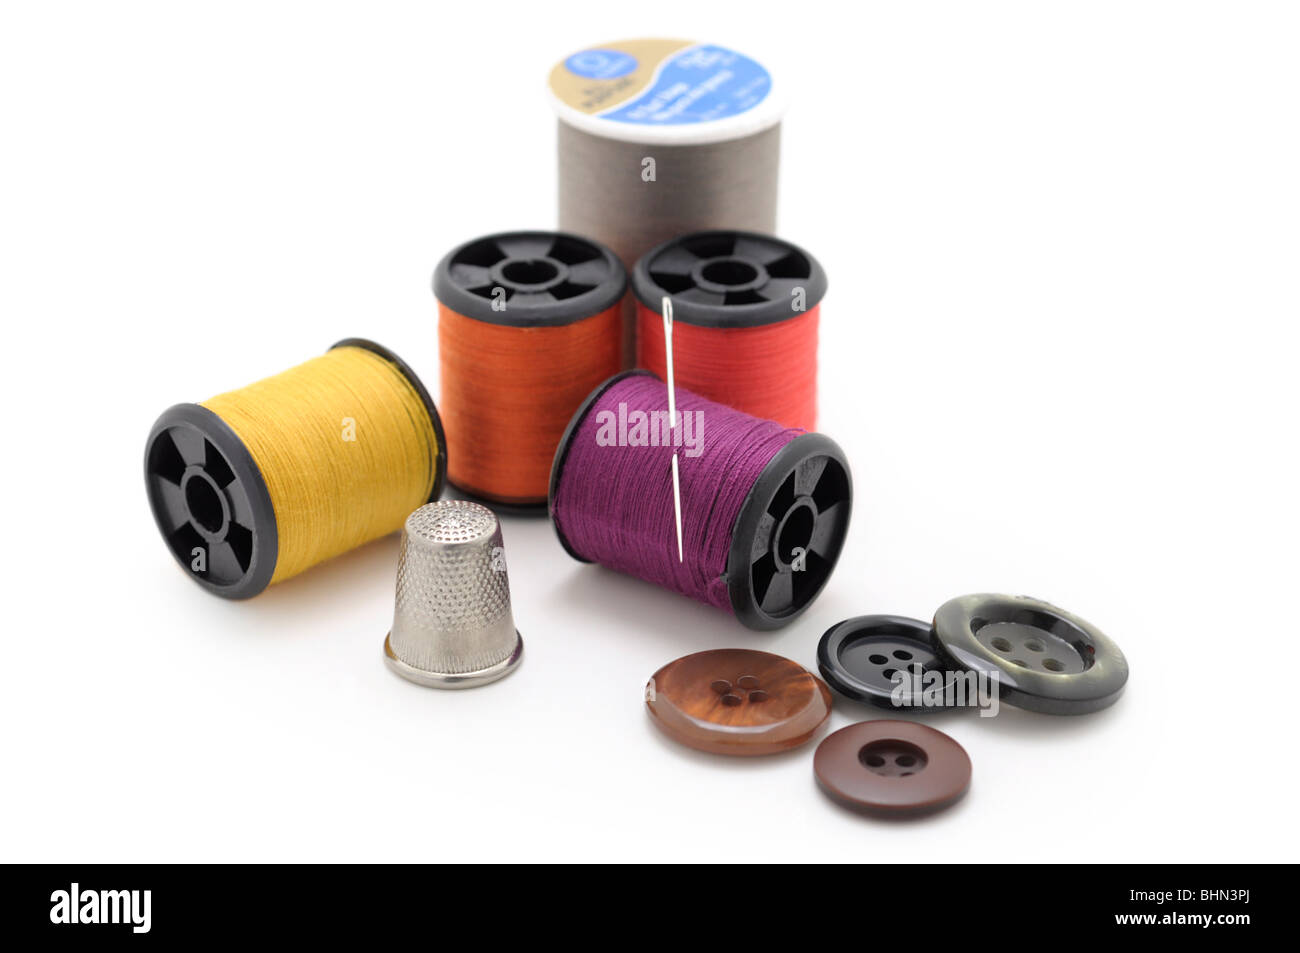 Spools of thread, Needle and Buttons - Stock Image